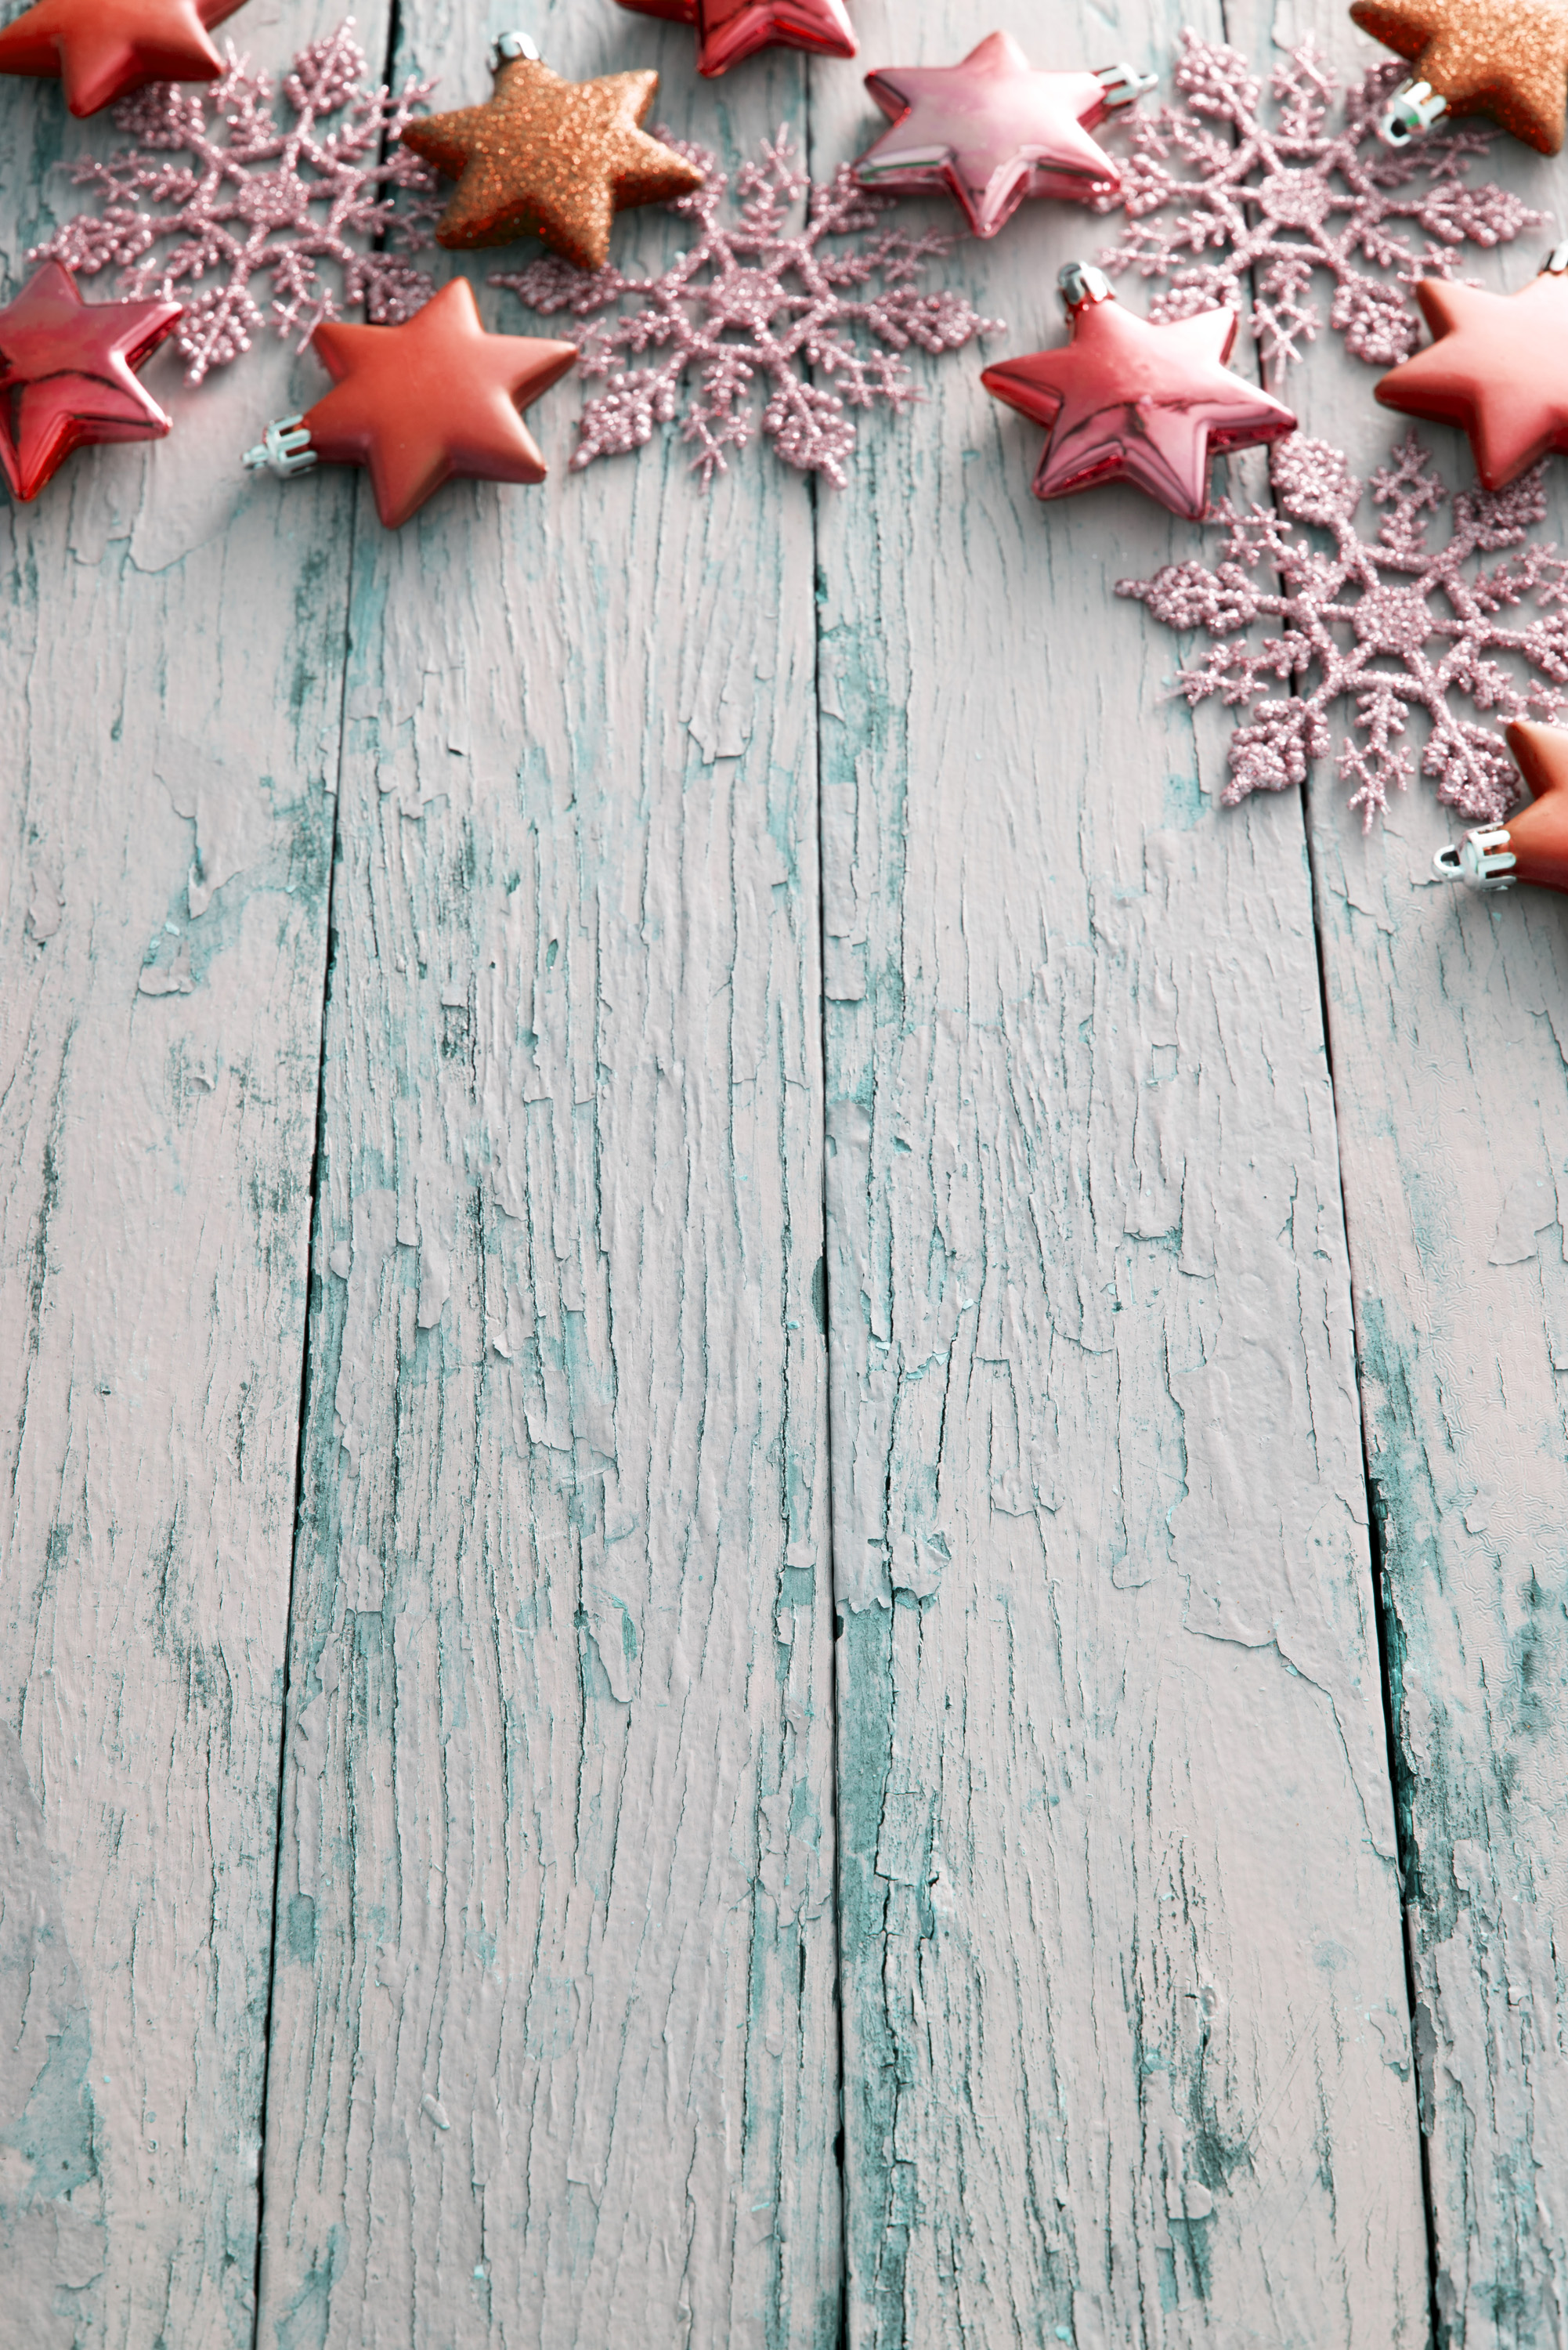 Rustic Christmas Border Of Orange Stars And Snowflakes On Blue Textured Weathered Wood With Copy Space